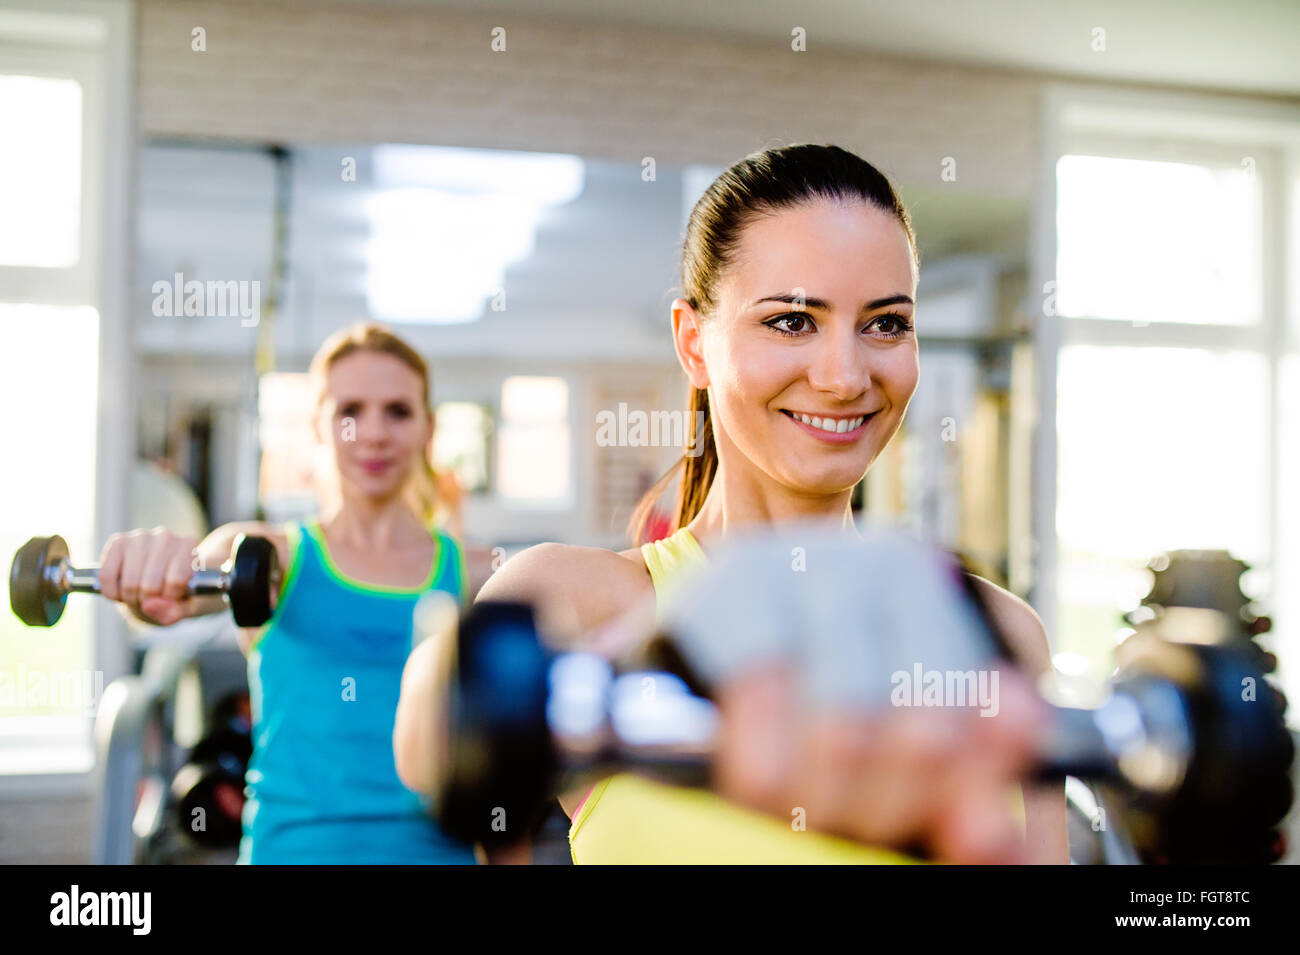 Two fit women in gym working out with weights - Stock Image